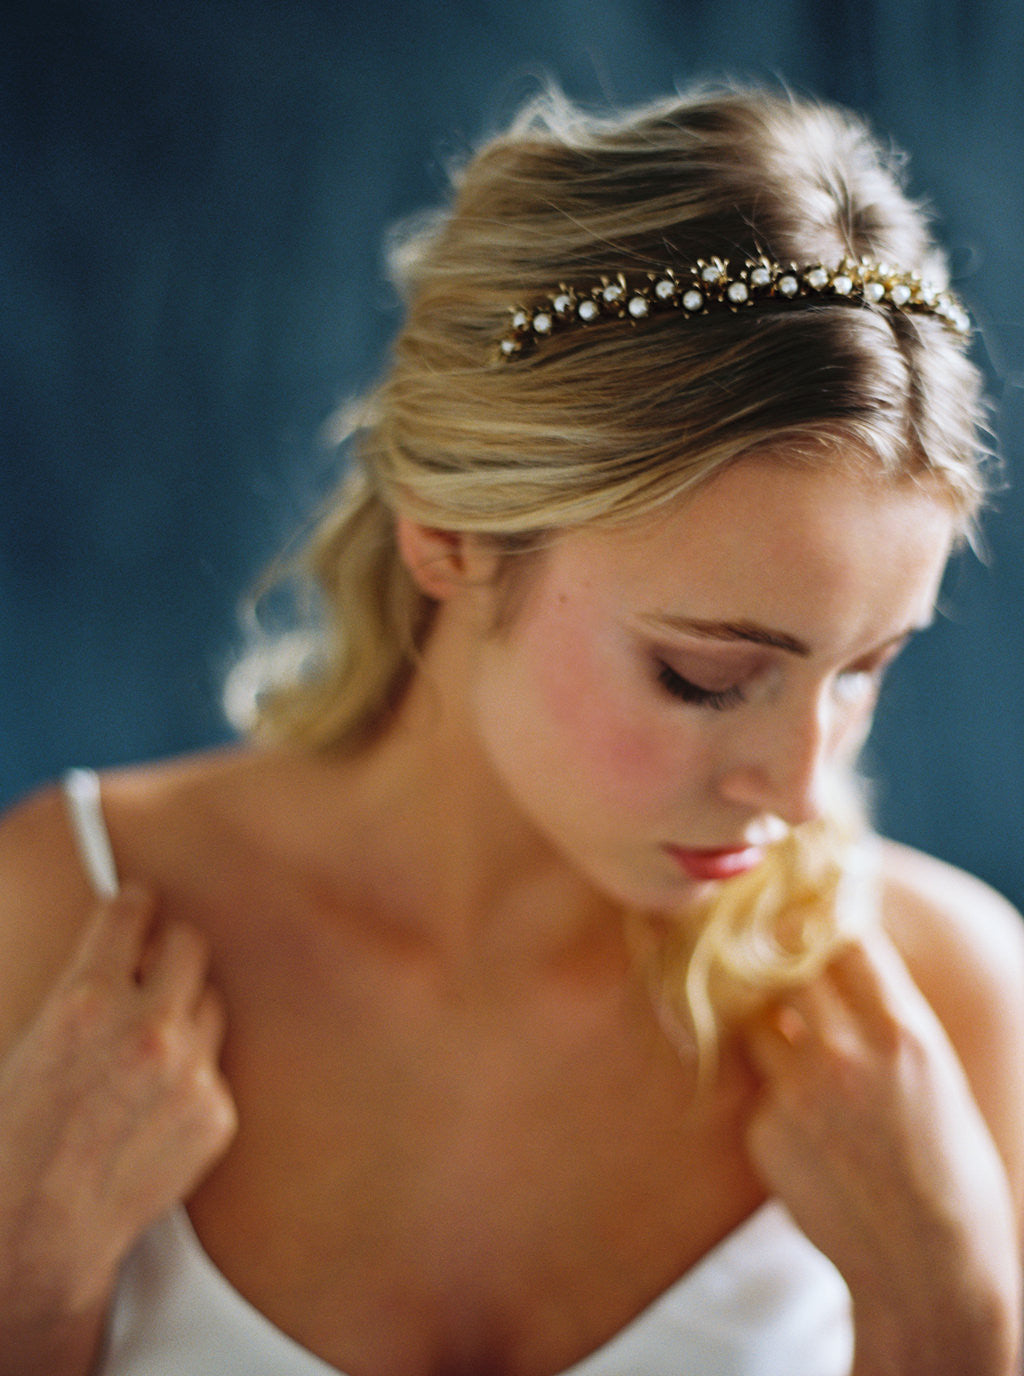 Lily of the Valley Crown - Bridal Wedding Headpiece  f0d95fb765f